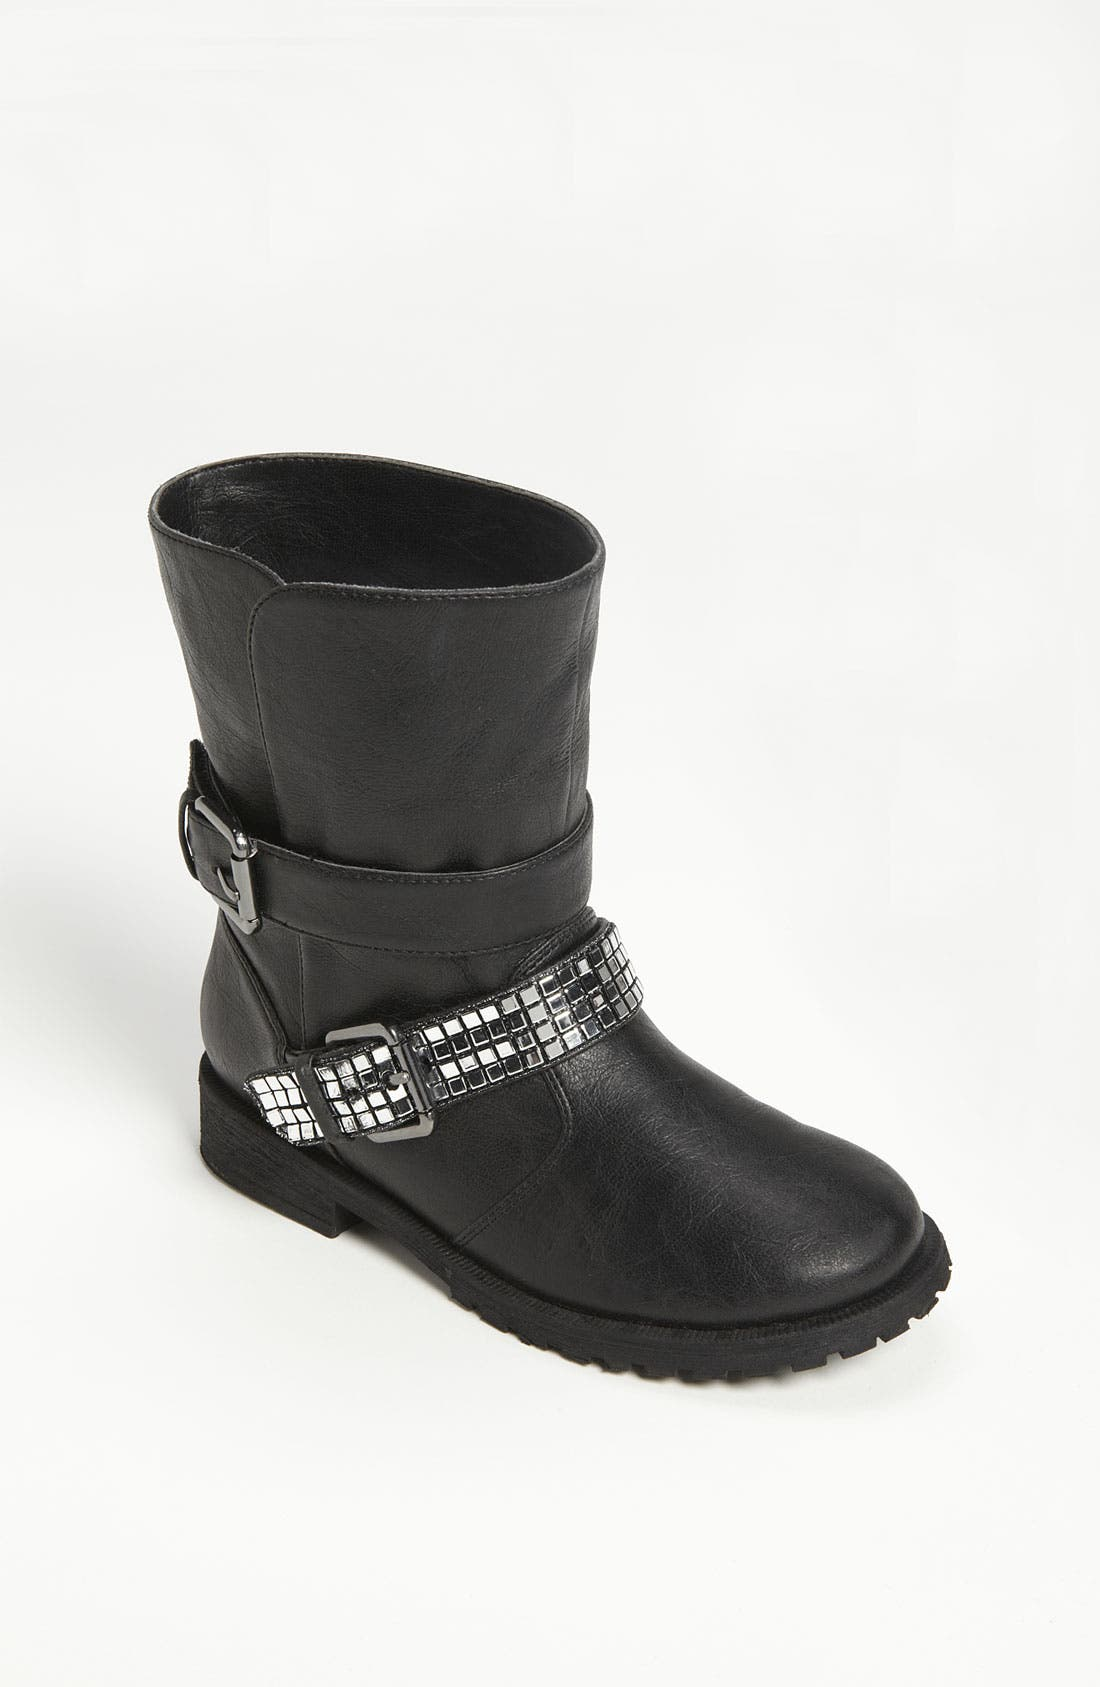 Main Image - Nordstrom 'Lindy' Boot (Toddler, Little Kid & Big Kid)